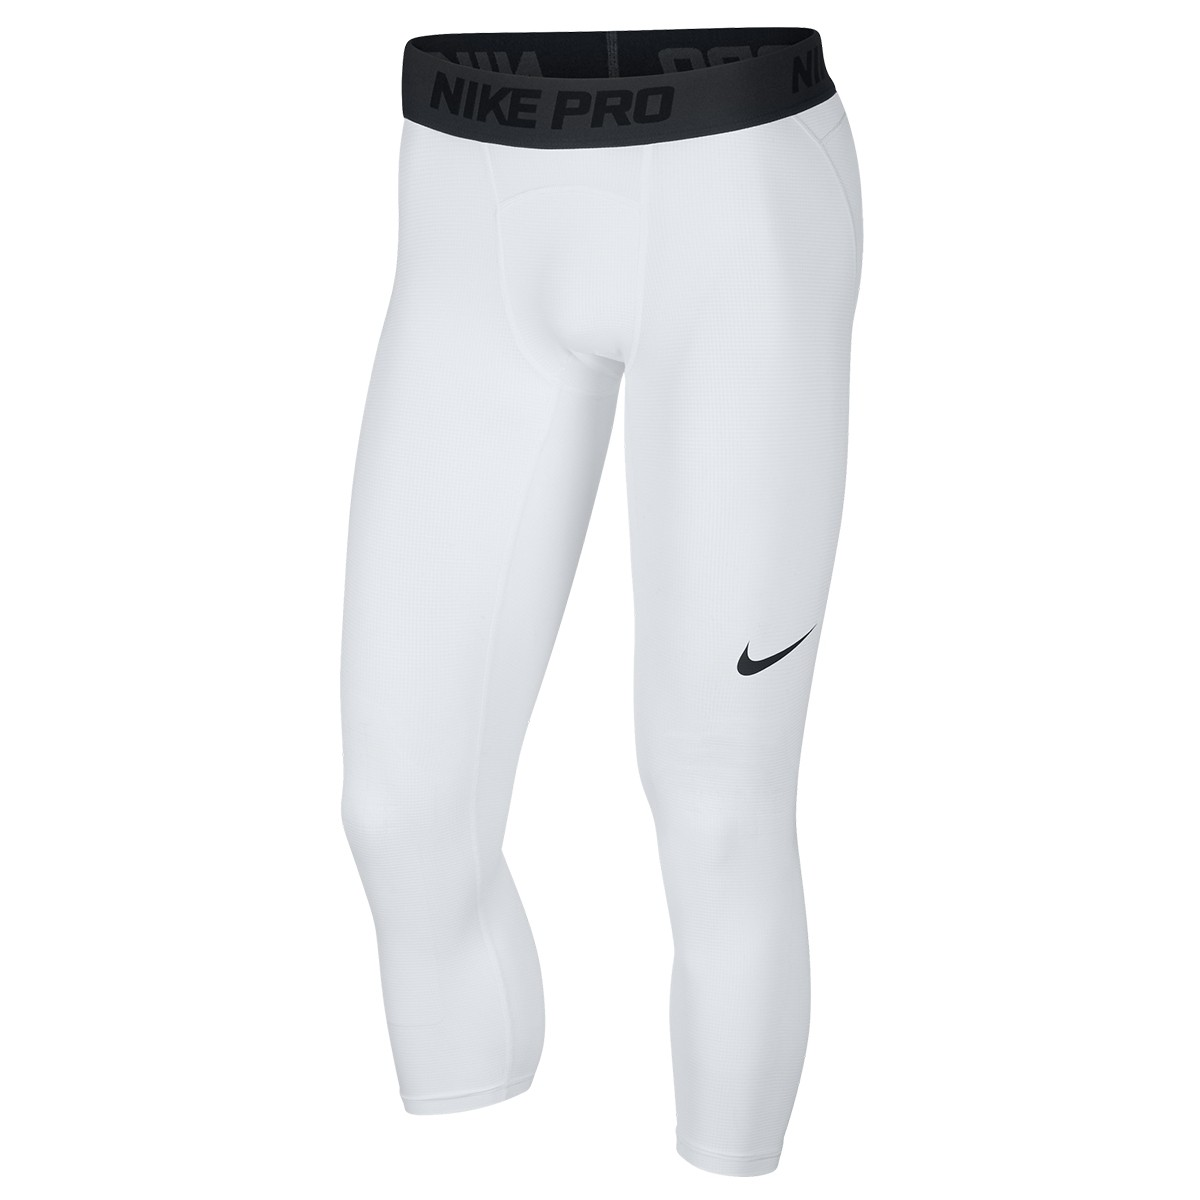 Nike Pro Men's 3/4 Basketball Tights 'White'